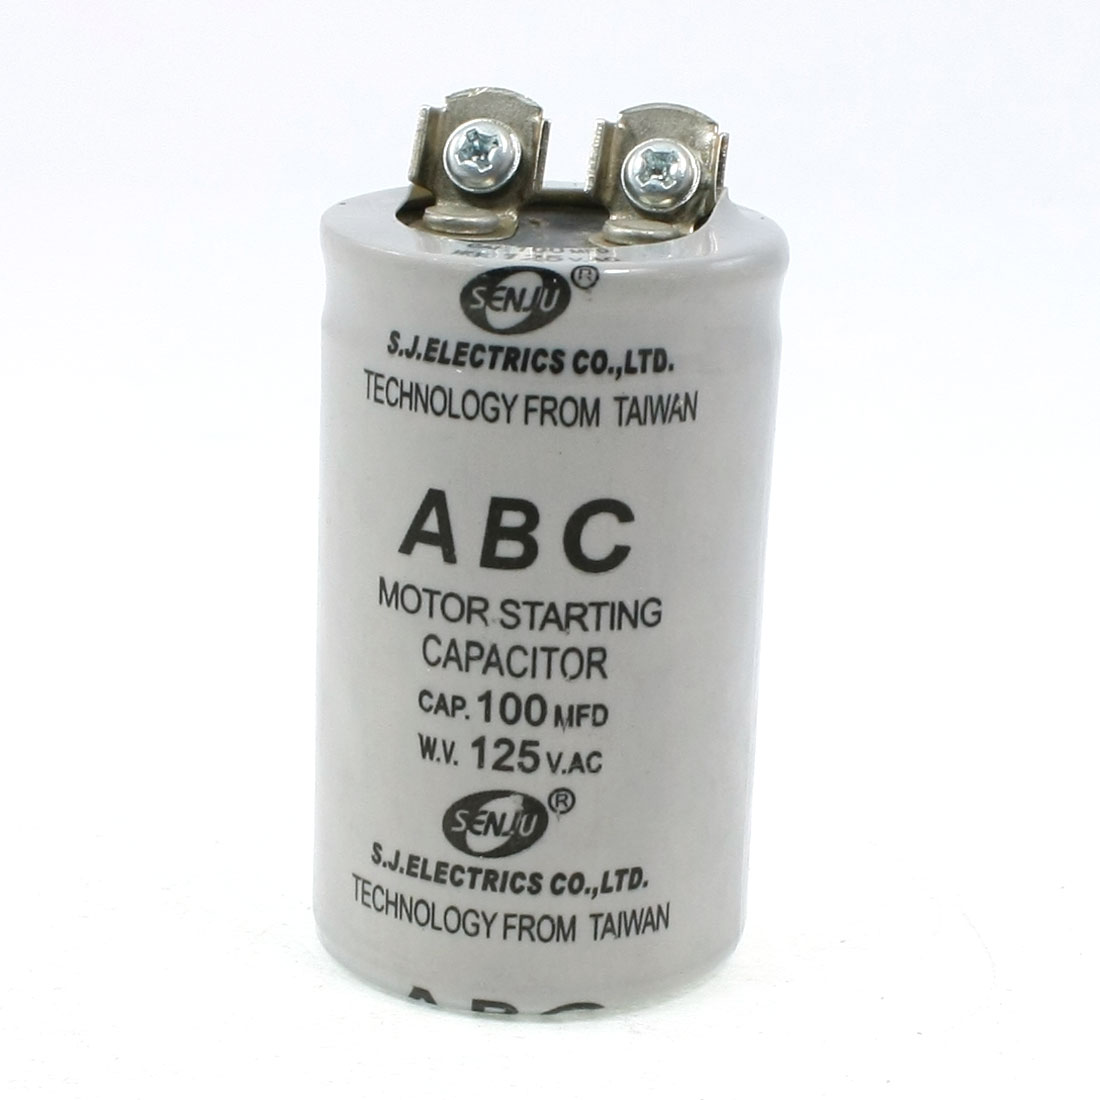 Cylinder Shaed Motor Start-up Capacitor 100MFD 125V AC